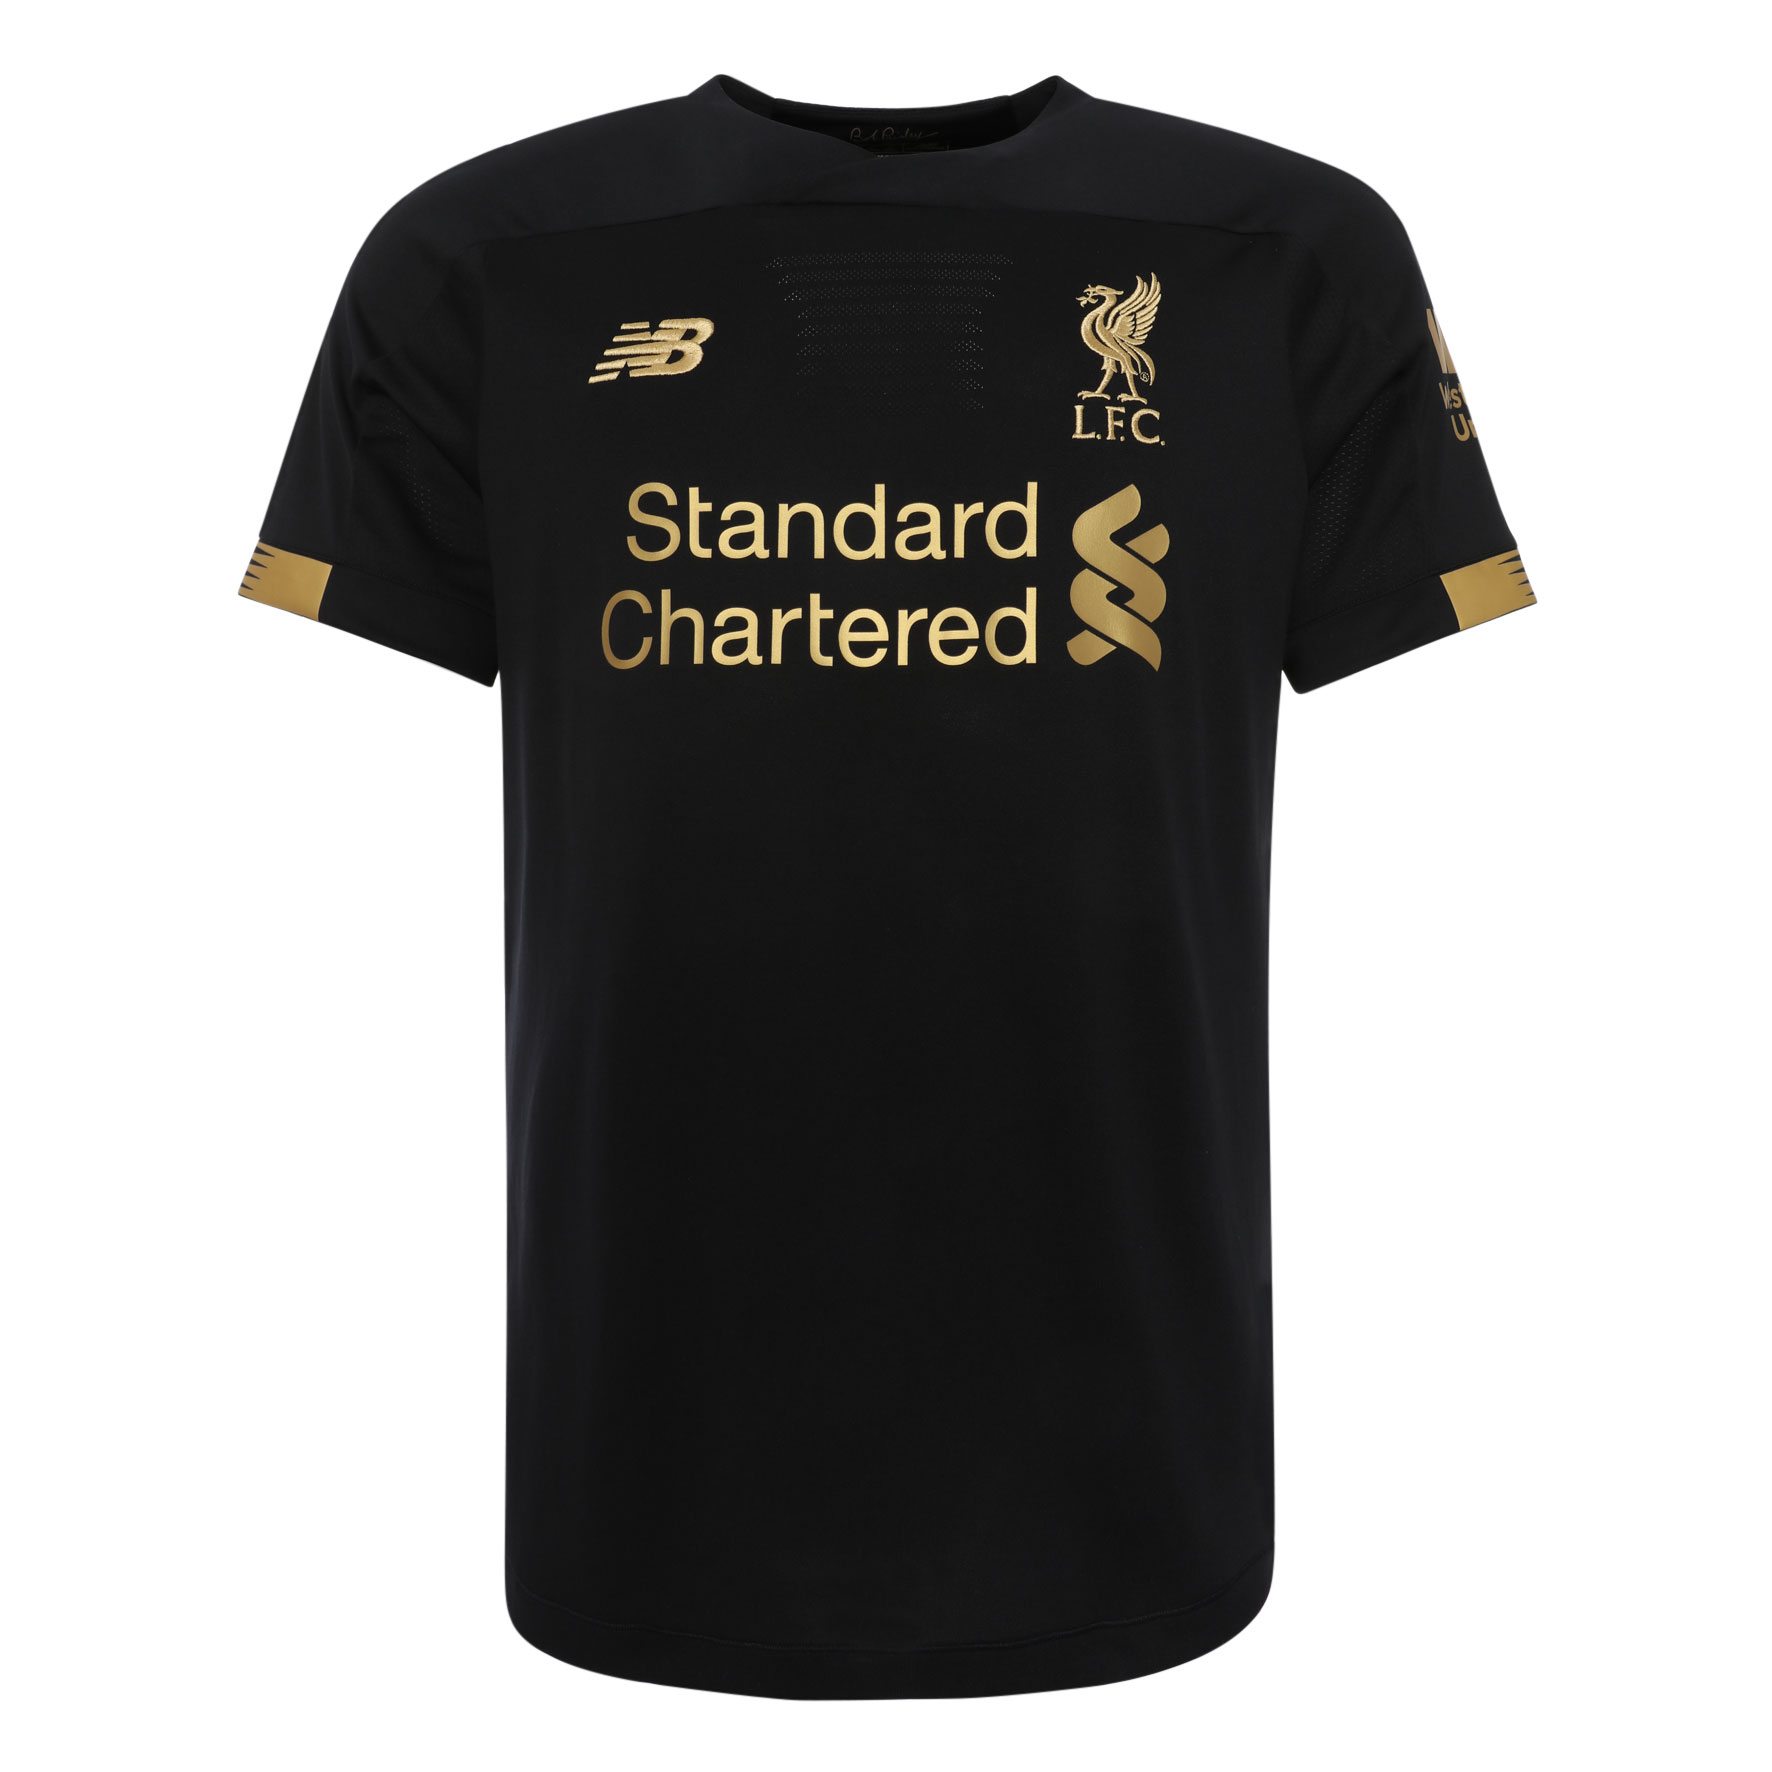 on sale 9e69e e3f8e Liverpool's 2019-20 home kit revealed - pre-order now ...